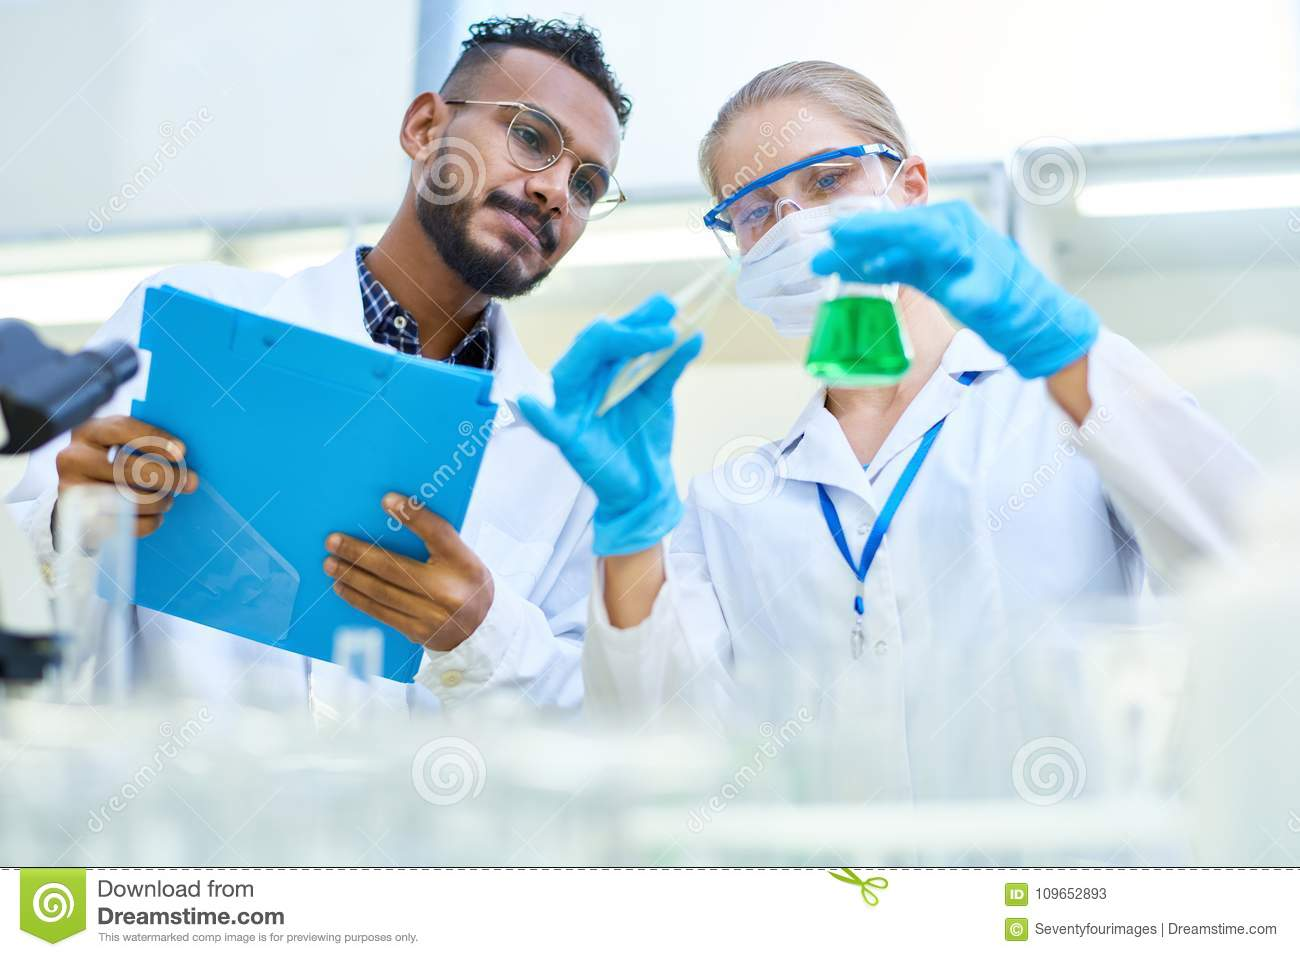 Two Scientists Working In Chemical Laboratory Stock Image - Image of